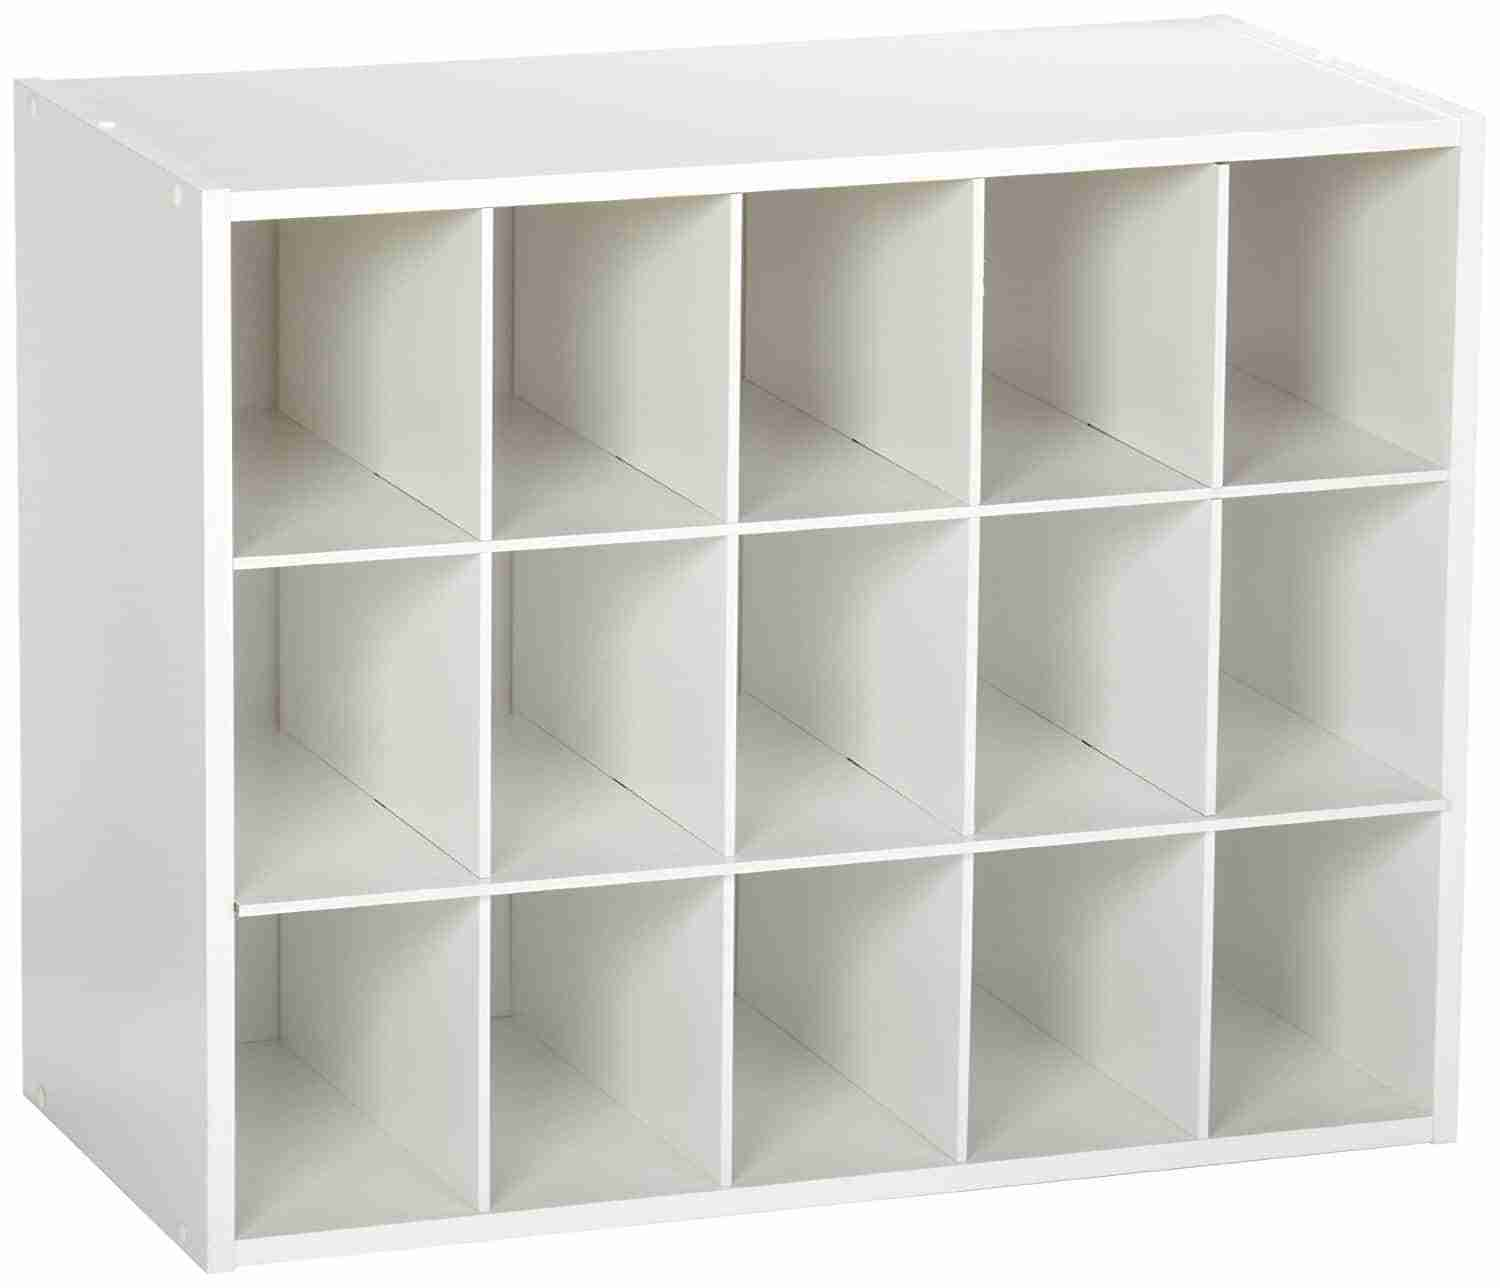 15 cube organizer for shoes